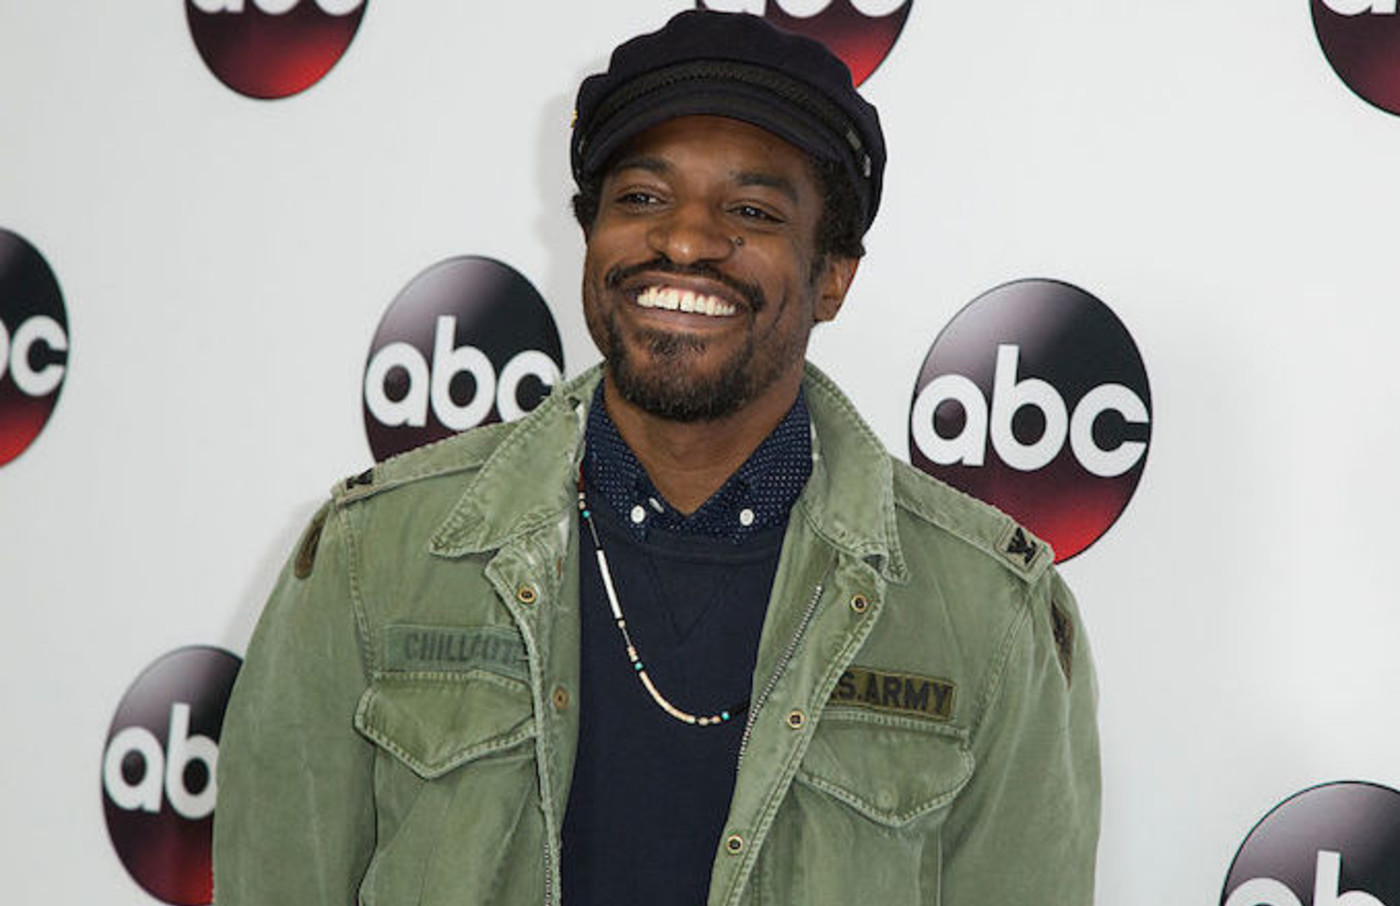 Andre 3000 smiling